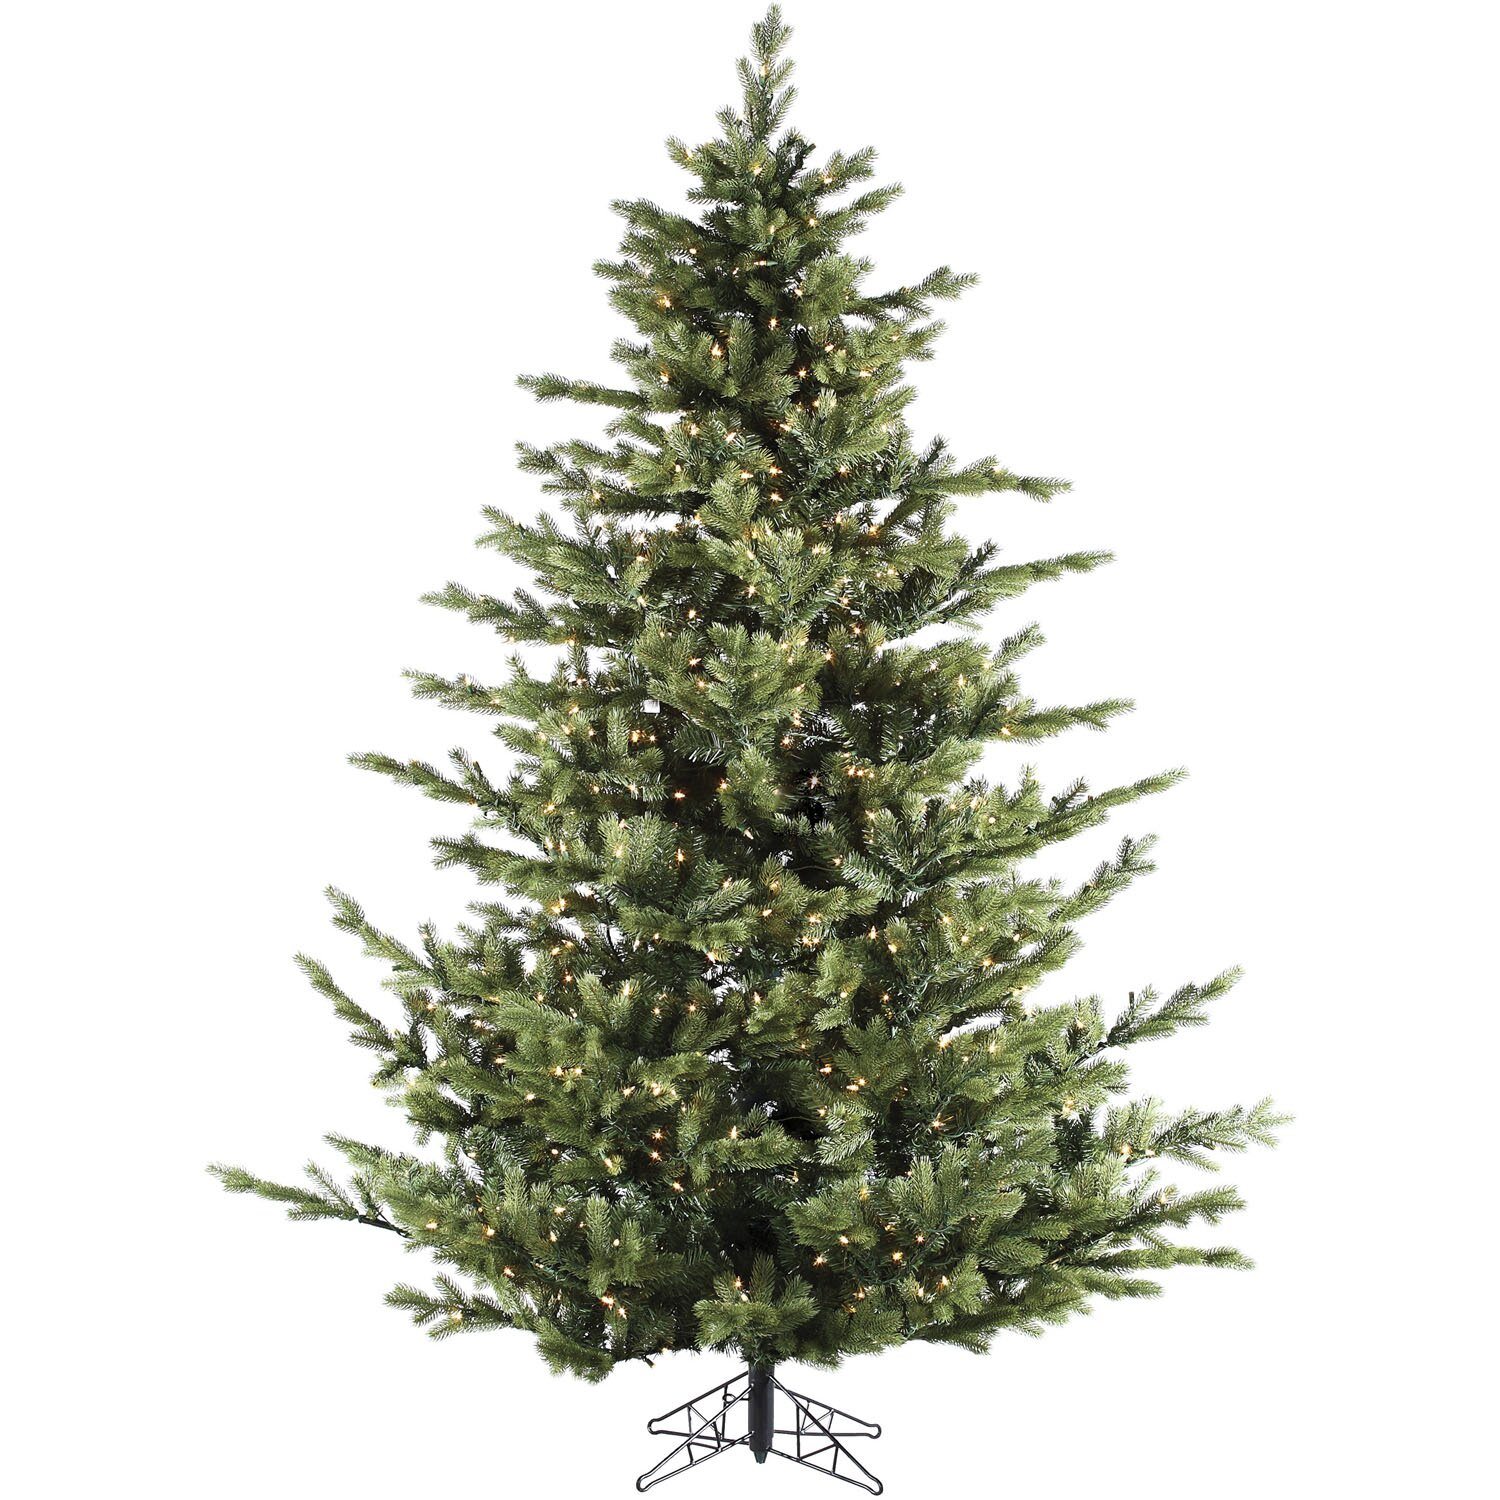 Fraser Hill Farm Foxtail Pine 7 5 Green Artificial Christmas Tree With 900 Led String Multi